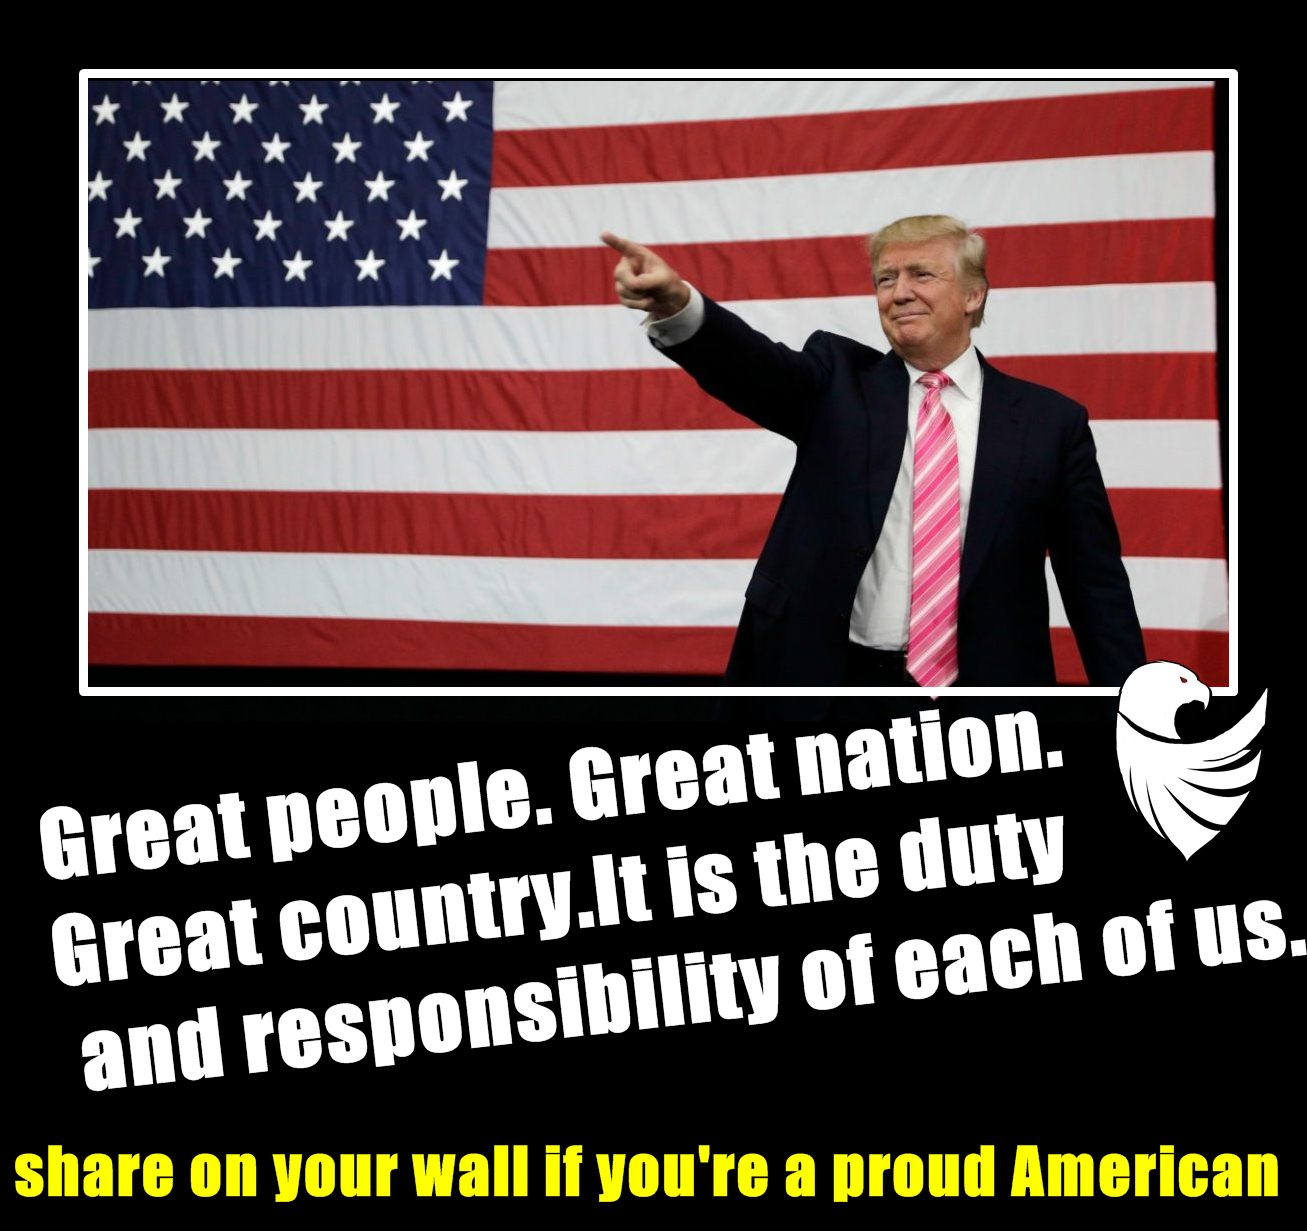 Donald Trump : Great people.  Great nation.  Great country. It is the duty  and responsibility  of each of us.